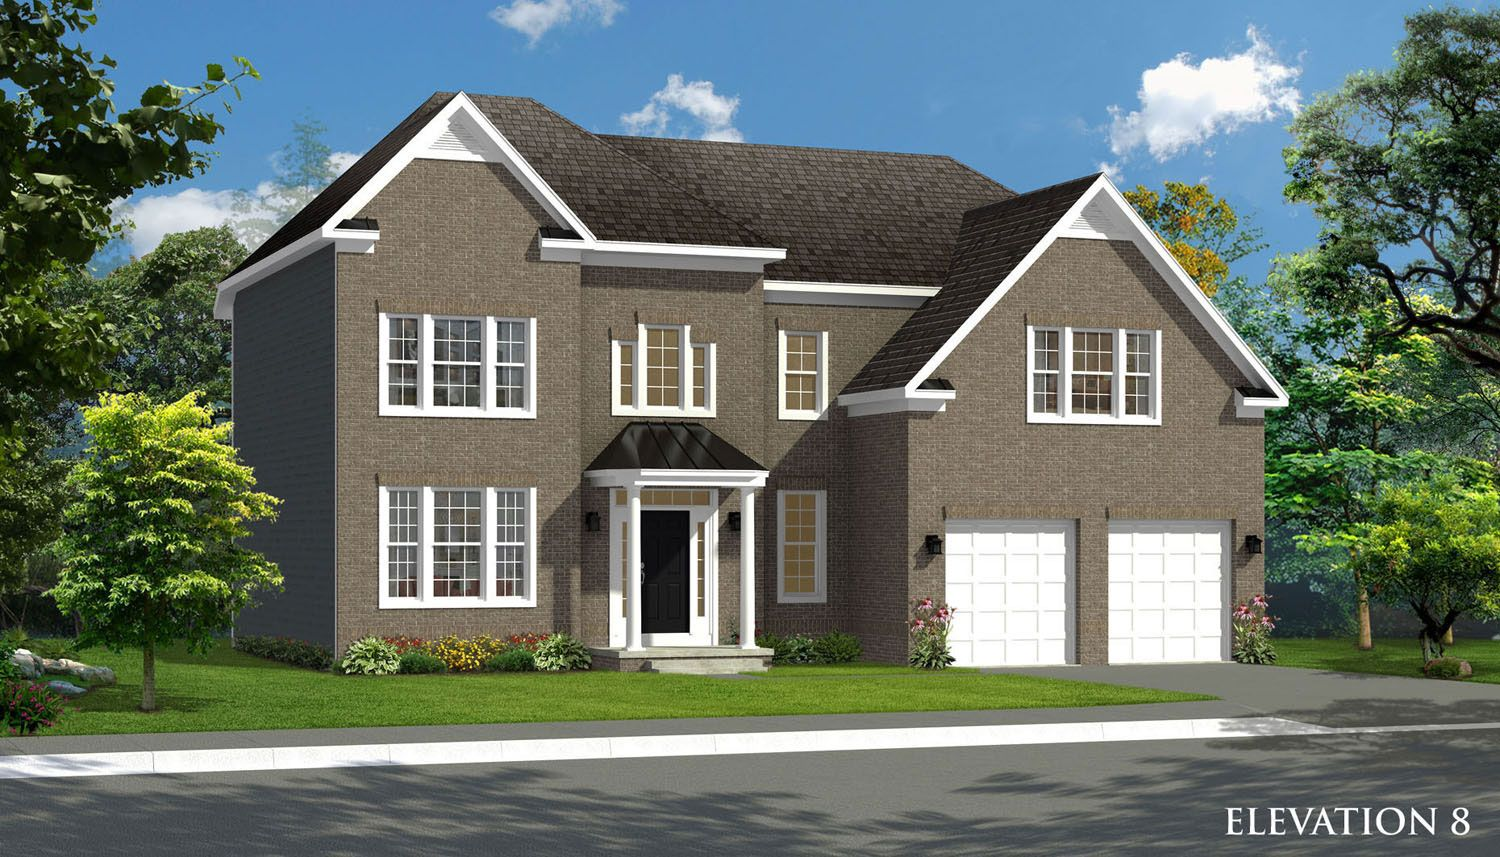 Single Family for Active at Shipley Meadows - Oakdale Ii 2112 Gable Drive Jessup, Maryland 20794 United States